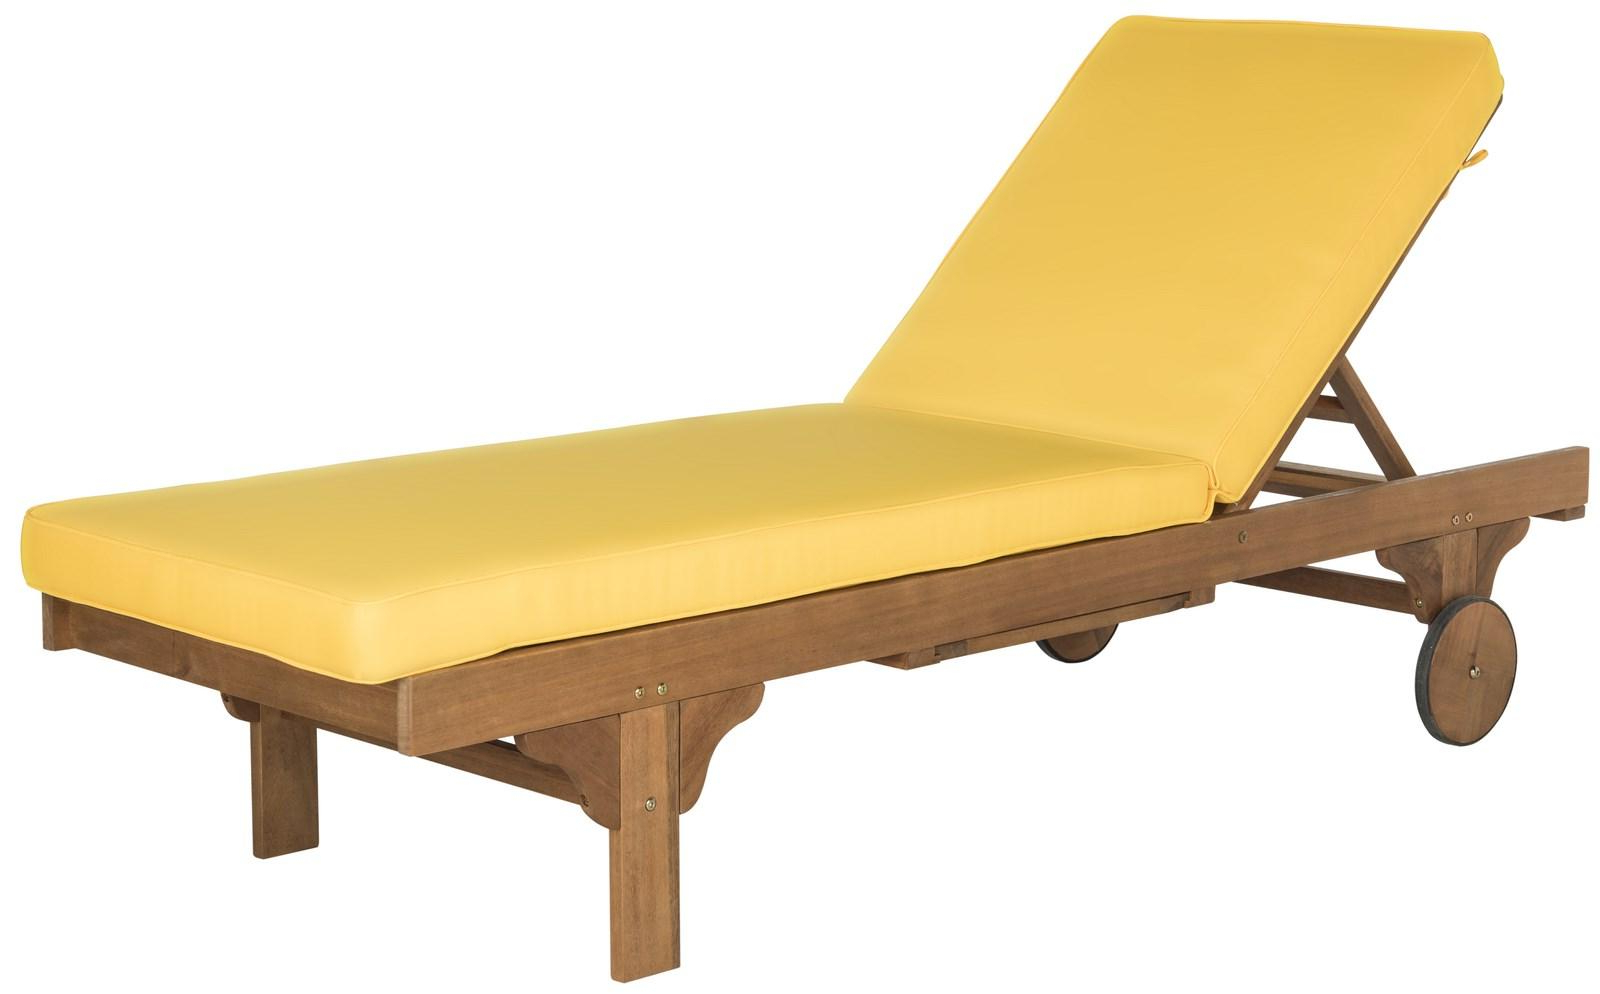 Outdoor Cart Wheel Adjustable Chaise Lounge Chairs With Regard To 2019 Chaise Lounge Chair (View 15 of 25)